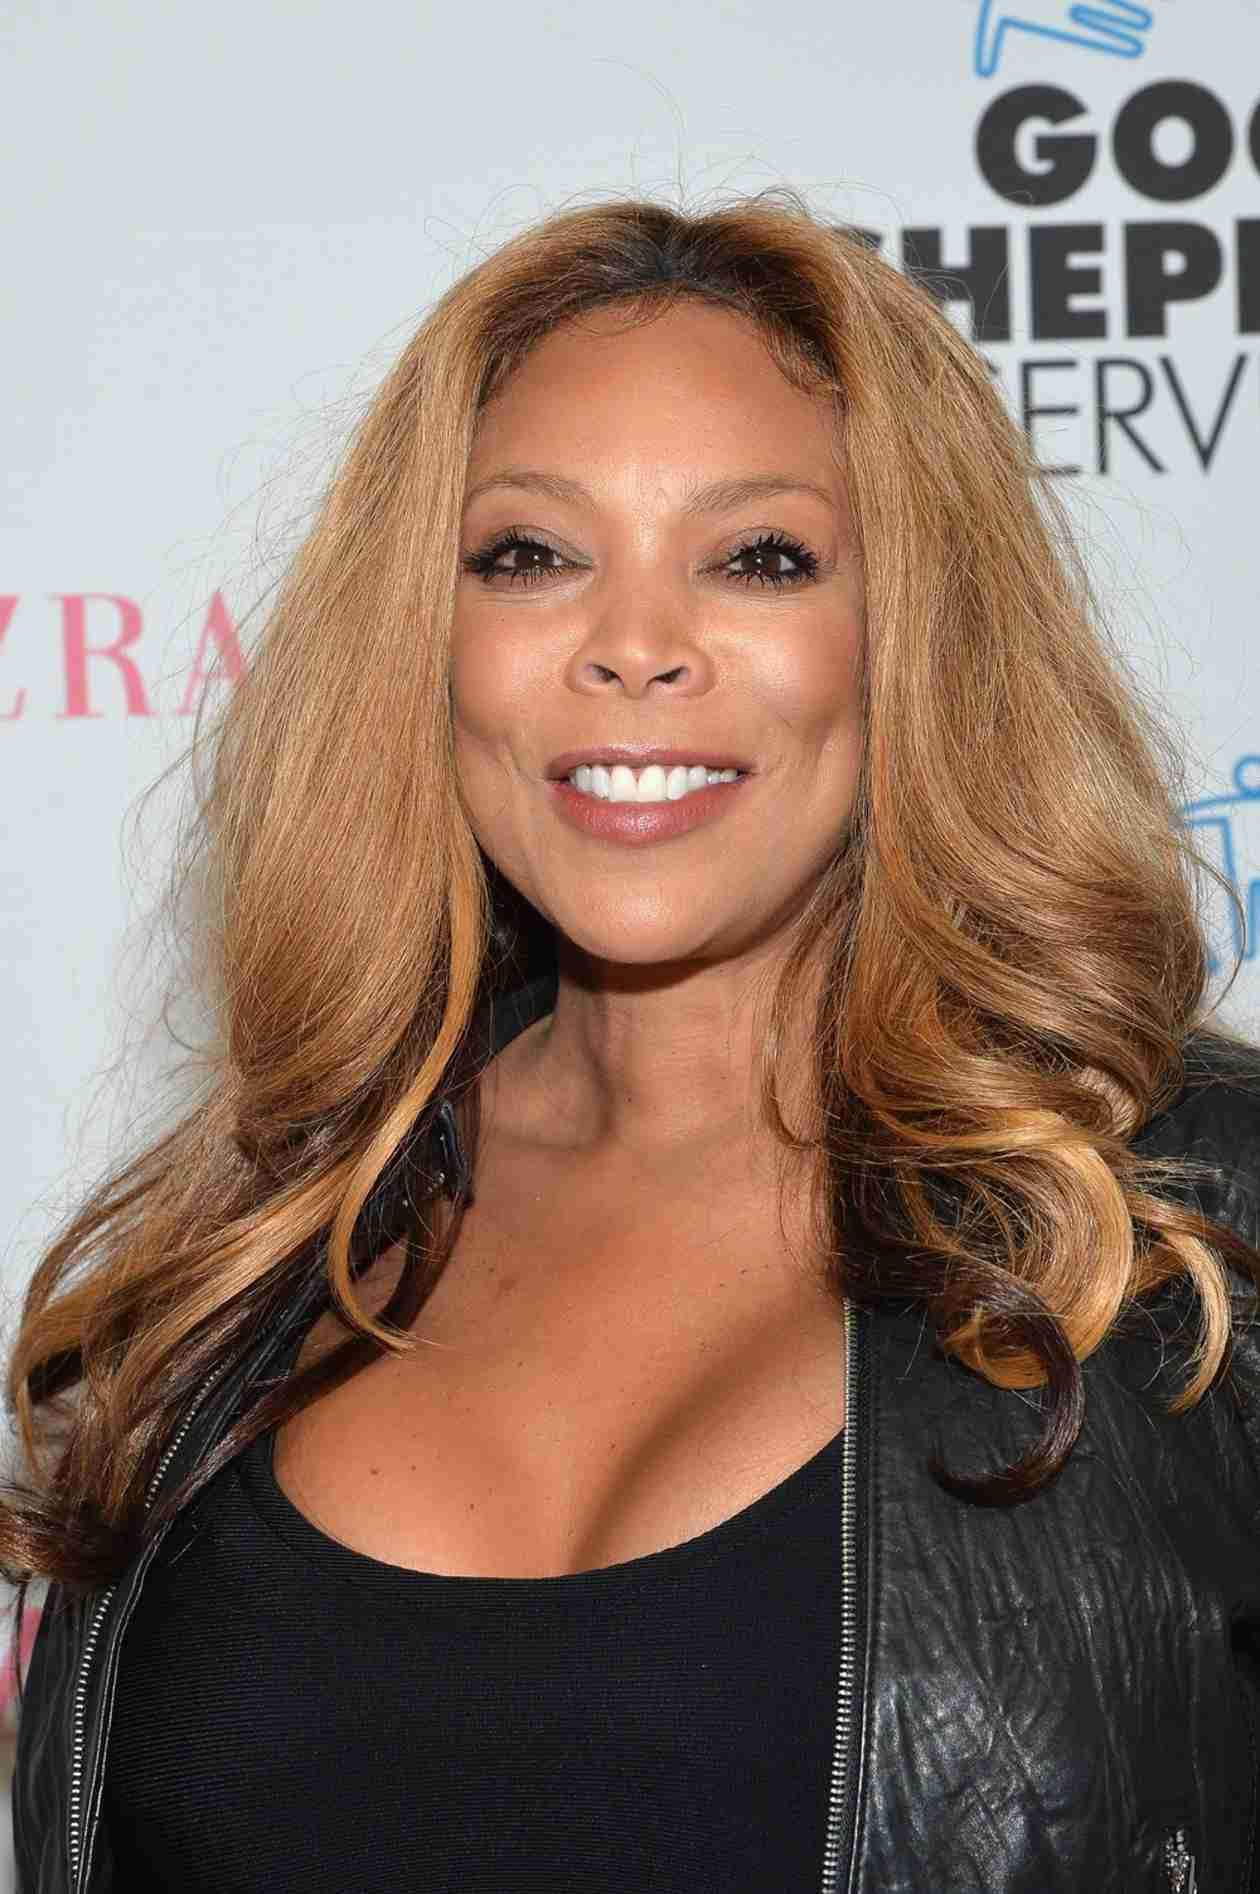 Wendy Williams Talks Fat Shaming, Cocaine Use, and Plastic Surgery